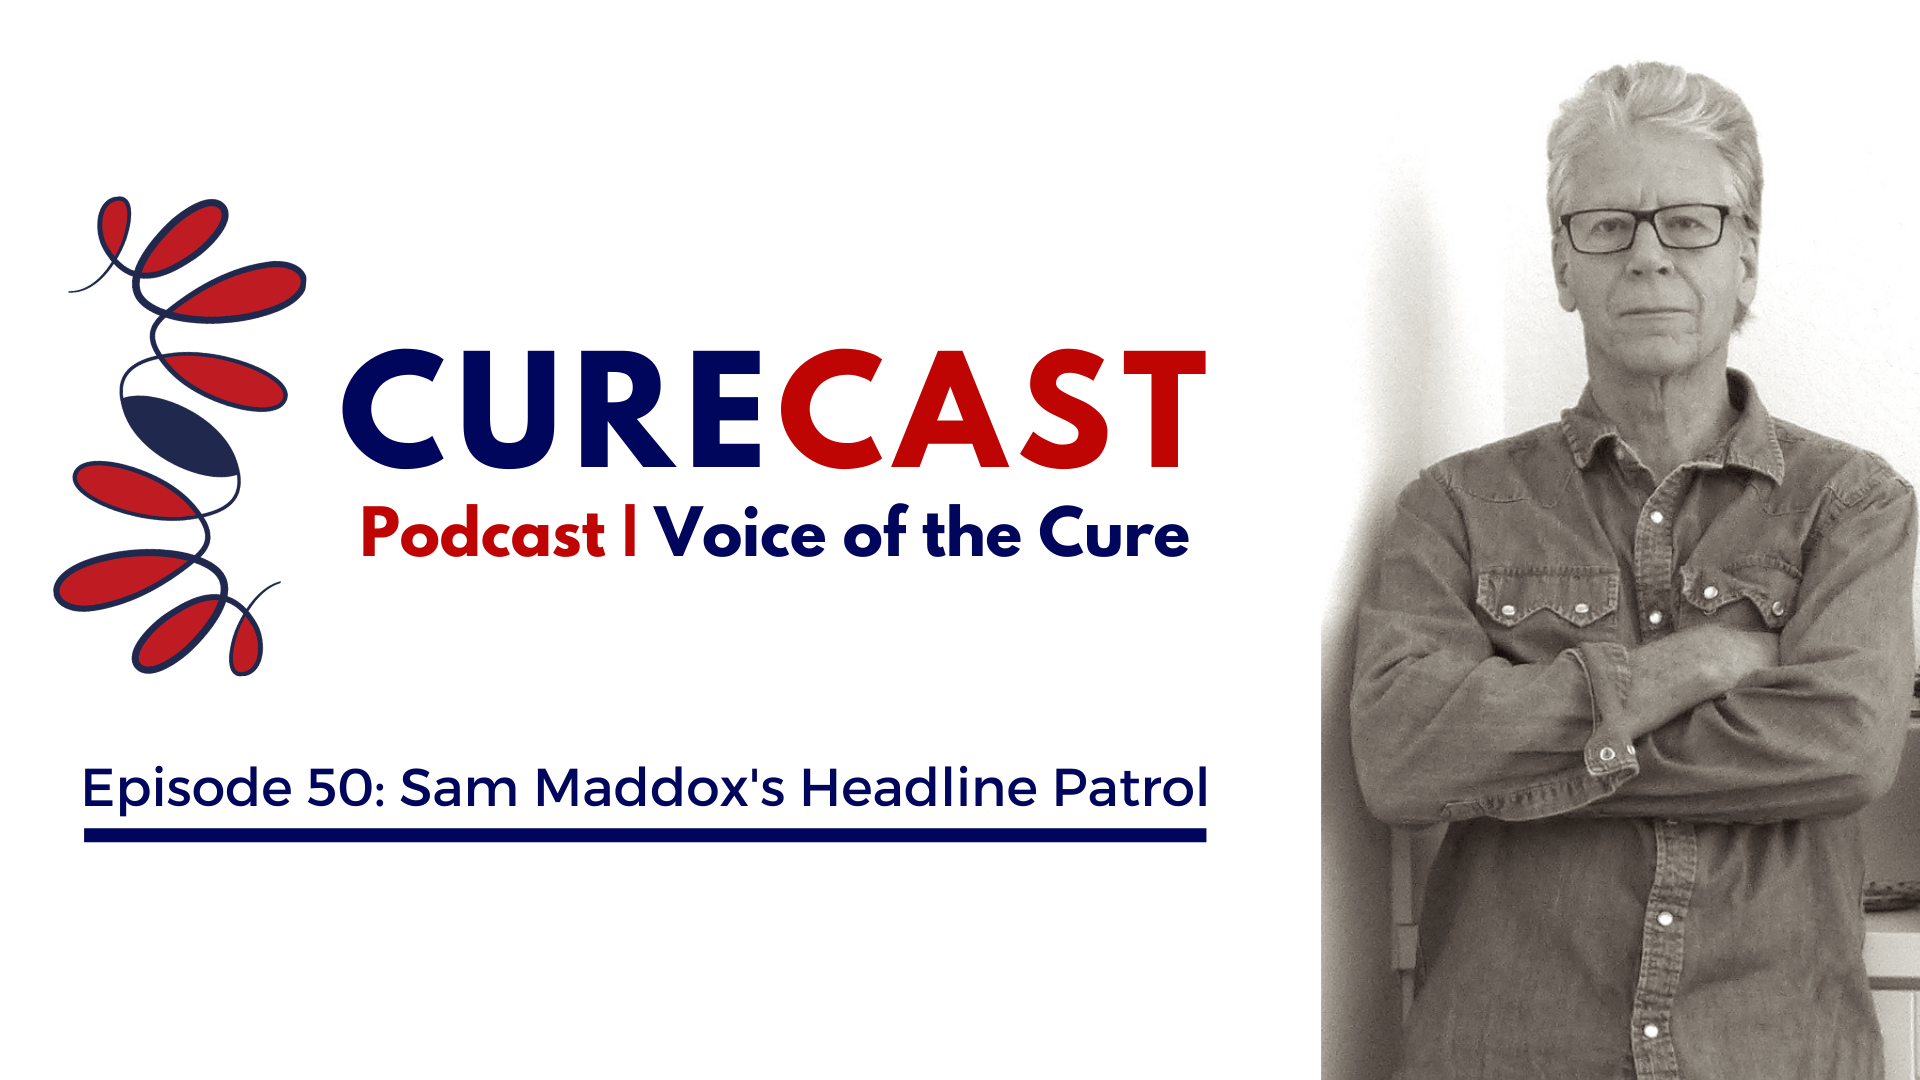 Sam Maddox talks about dissecting SCI headlines